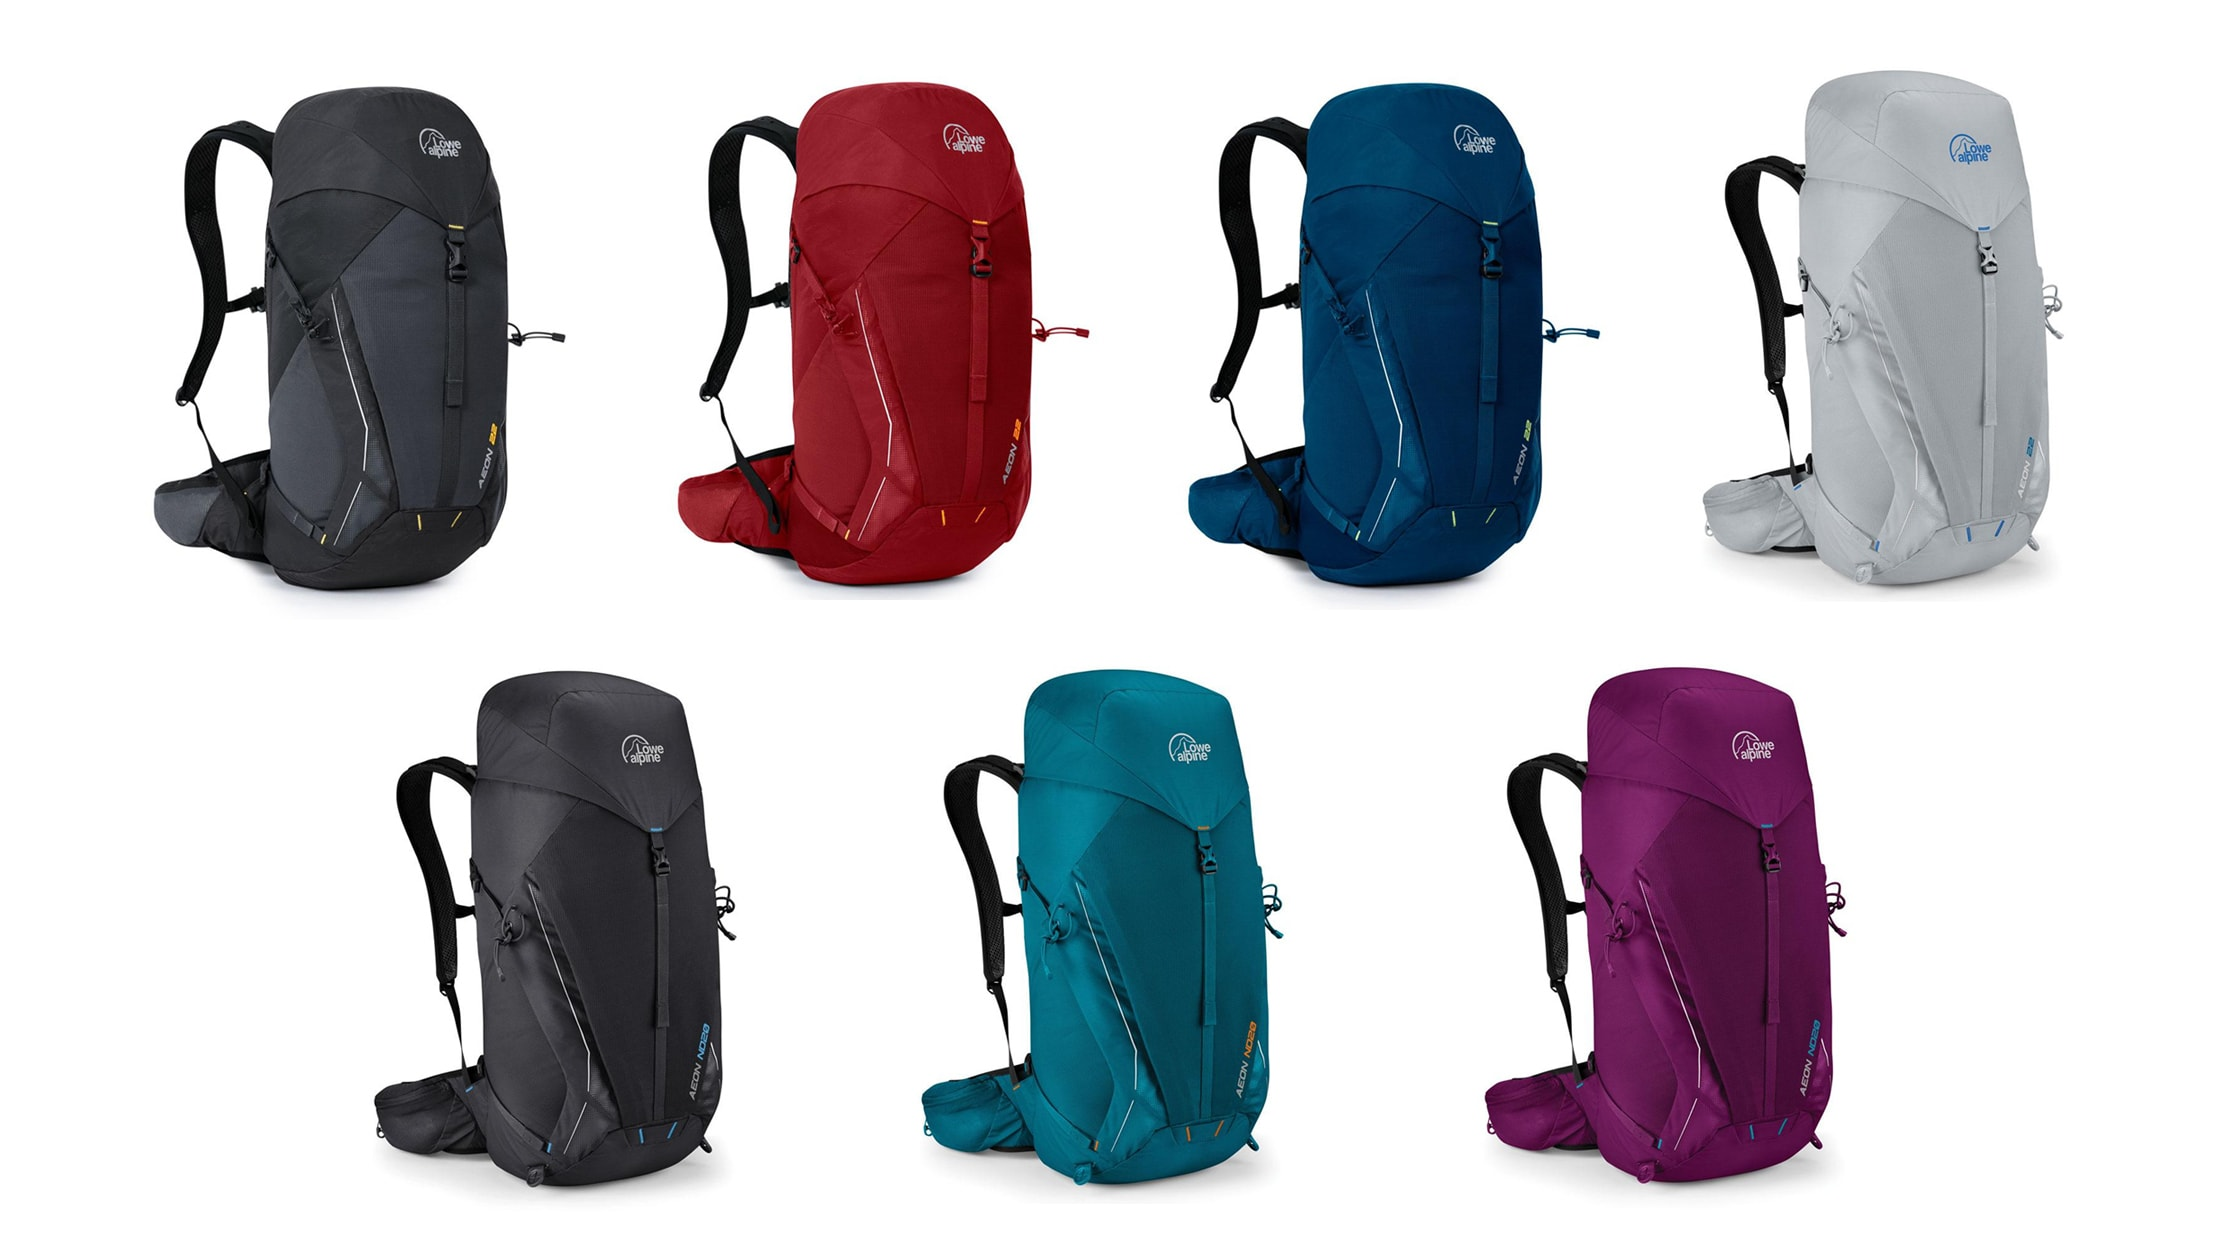 Available Colors For The Lowe Alpine Aeon